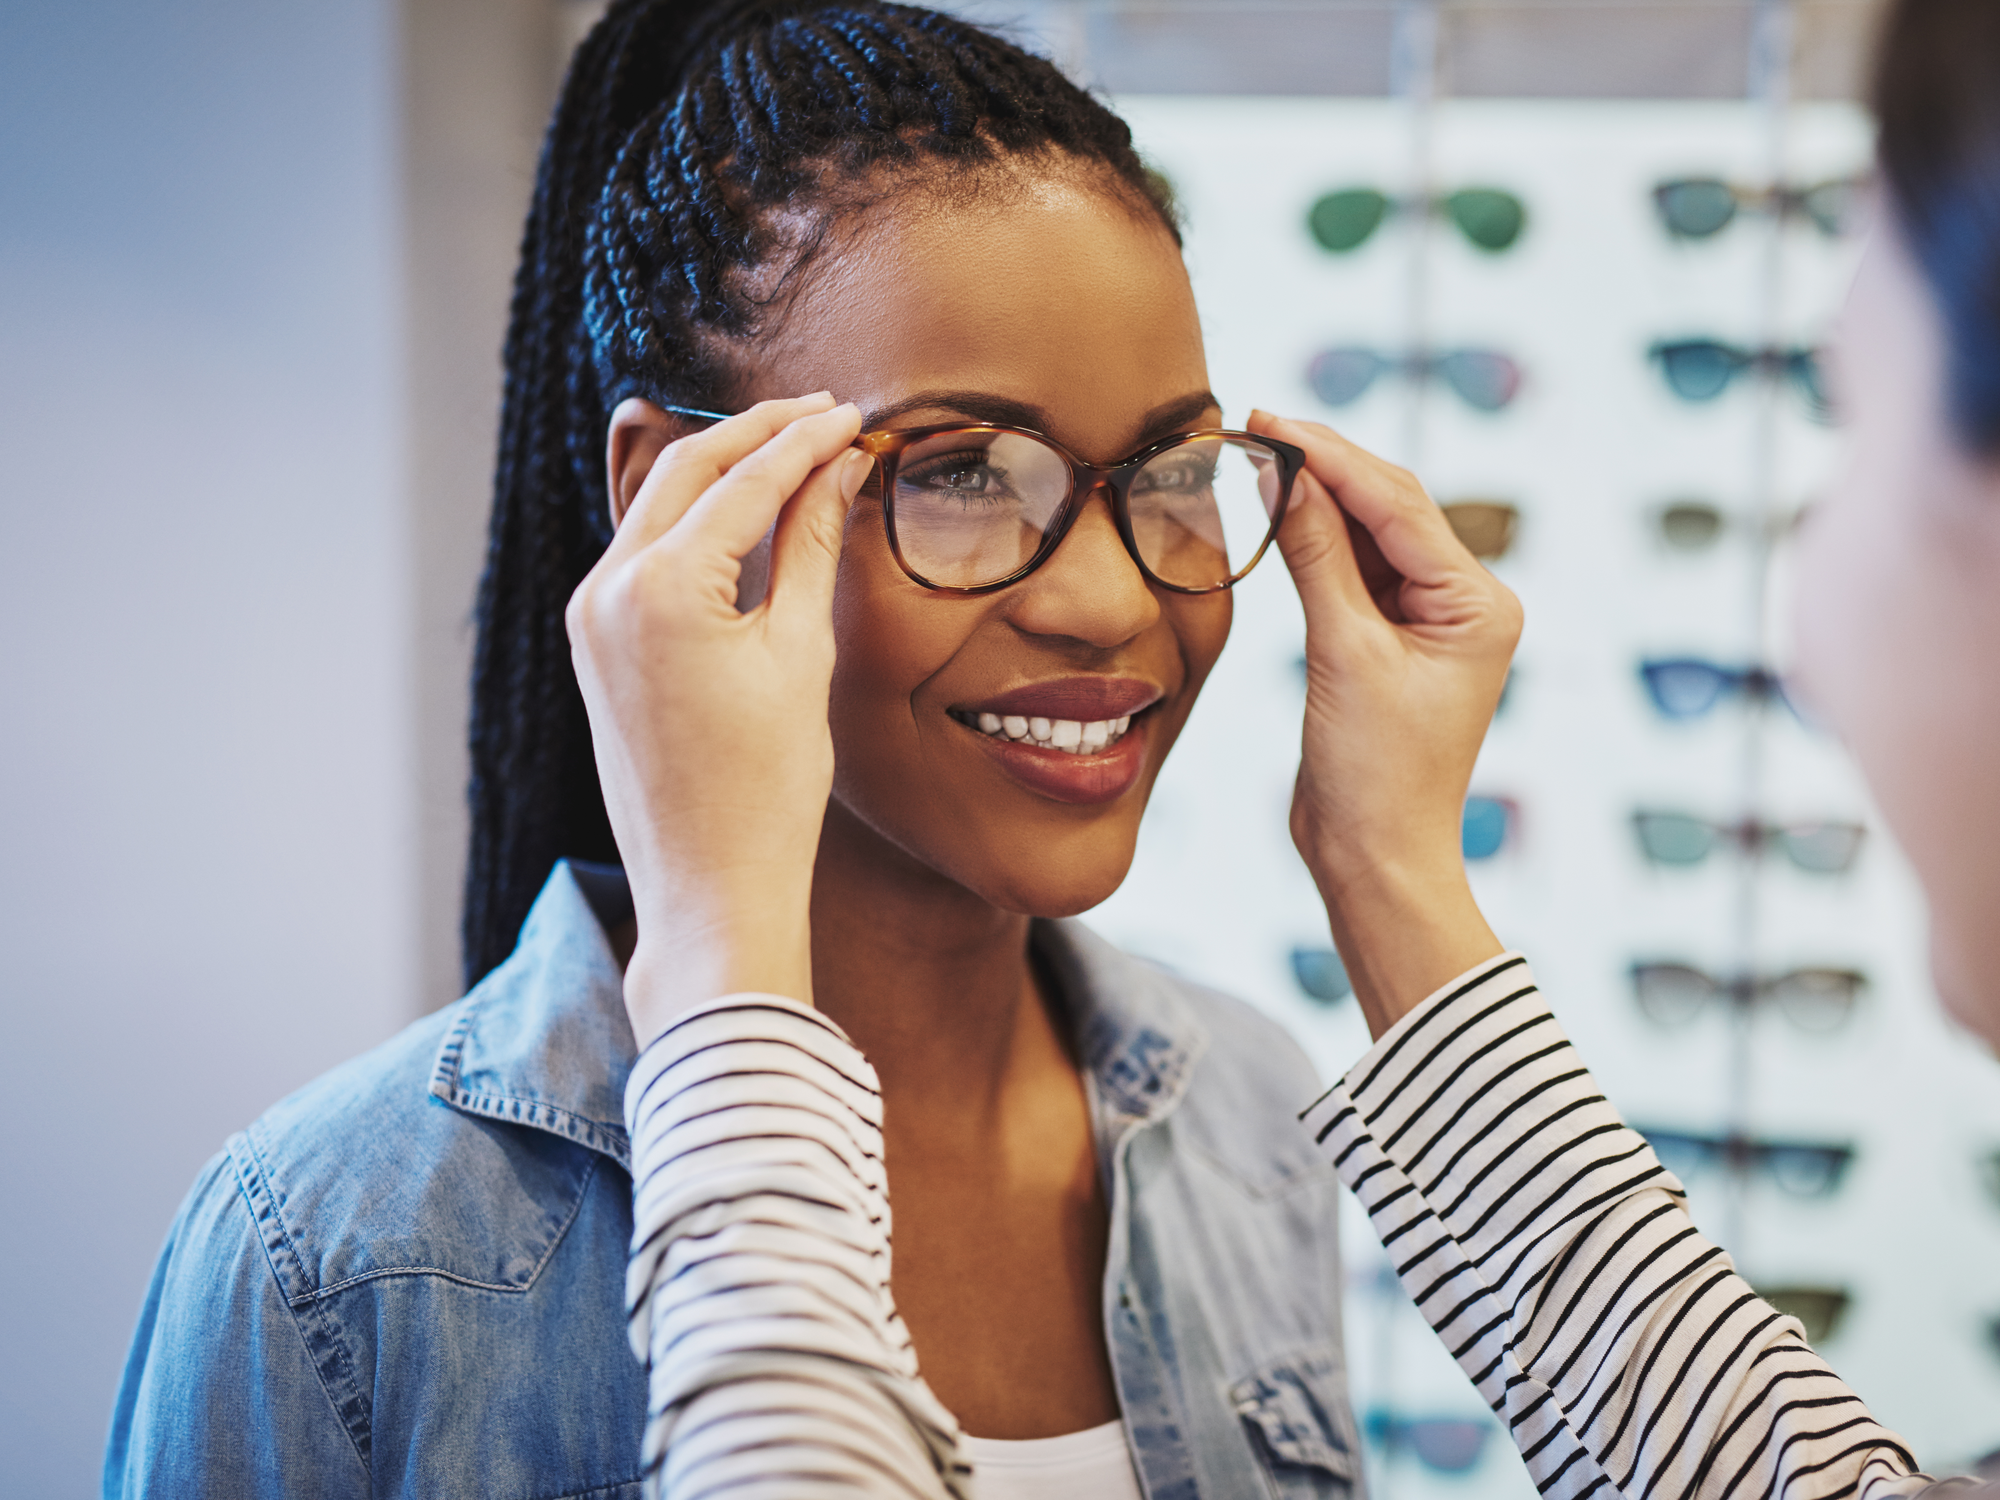 What to Look for When Choosing Prescription Glasses